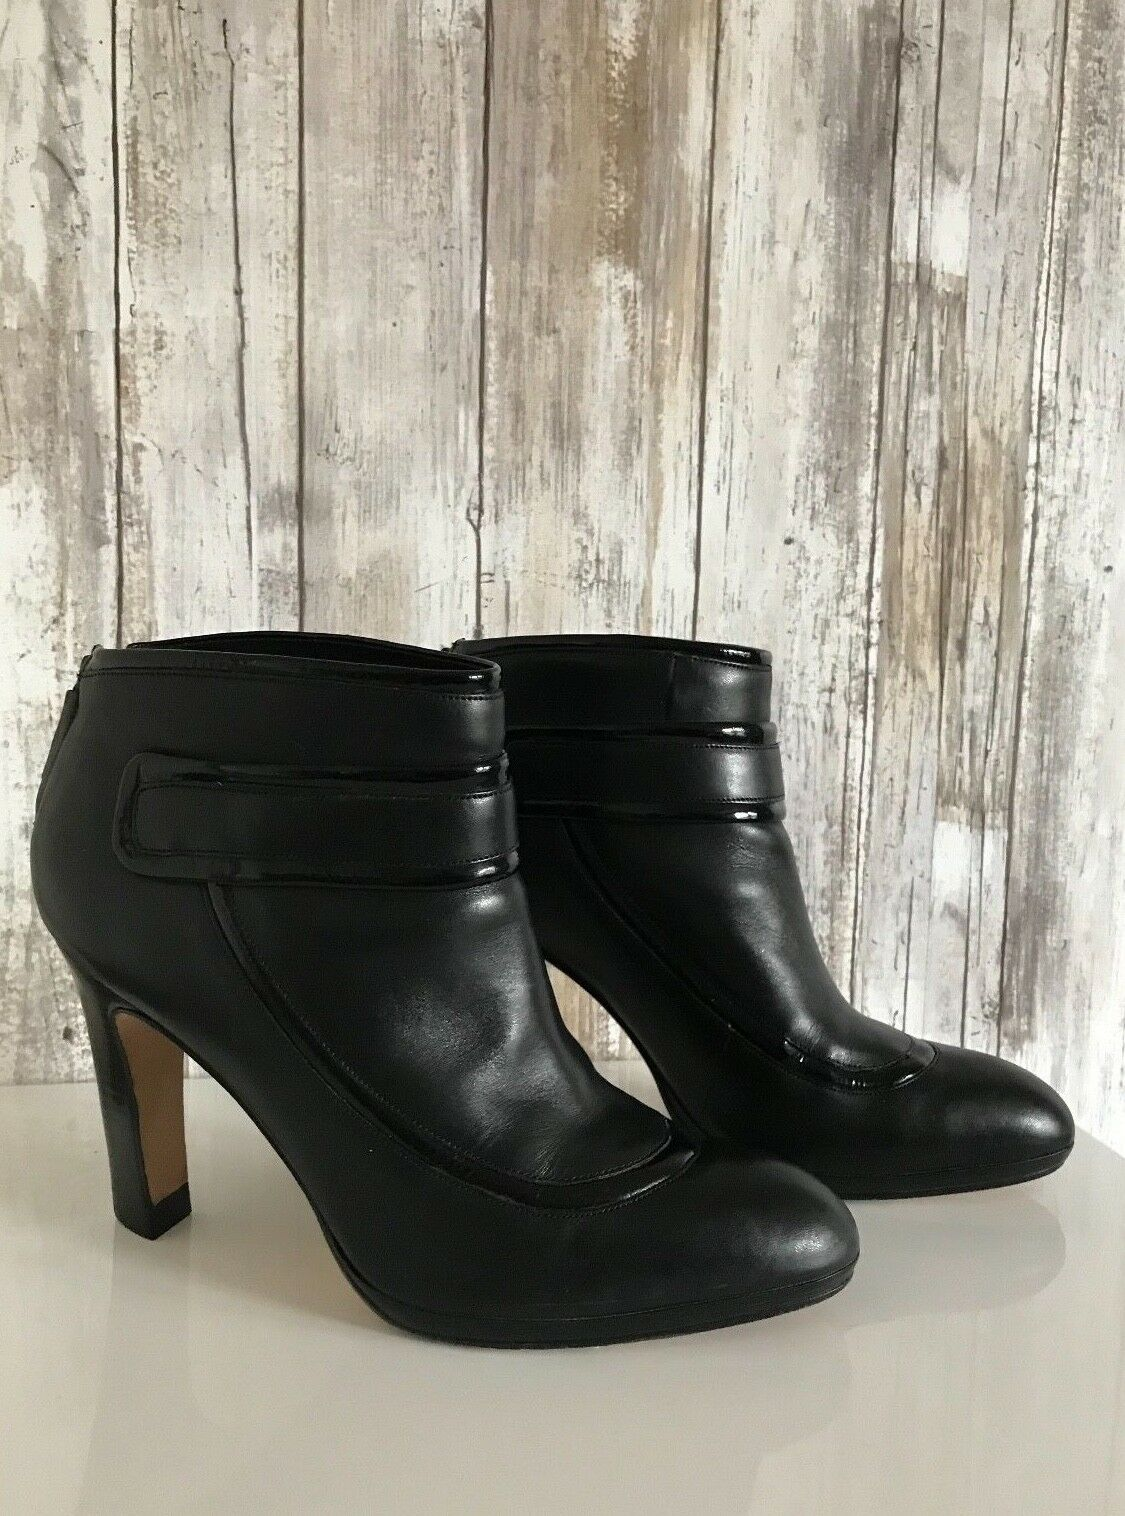 COLE HAAN Air Black  Patent Leather Bootie Bootie Bootie Ankle Heel Boots 7.5  RARE c2ba36